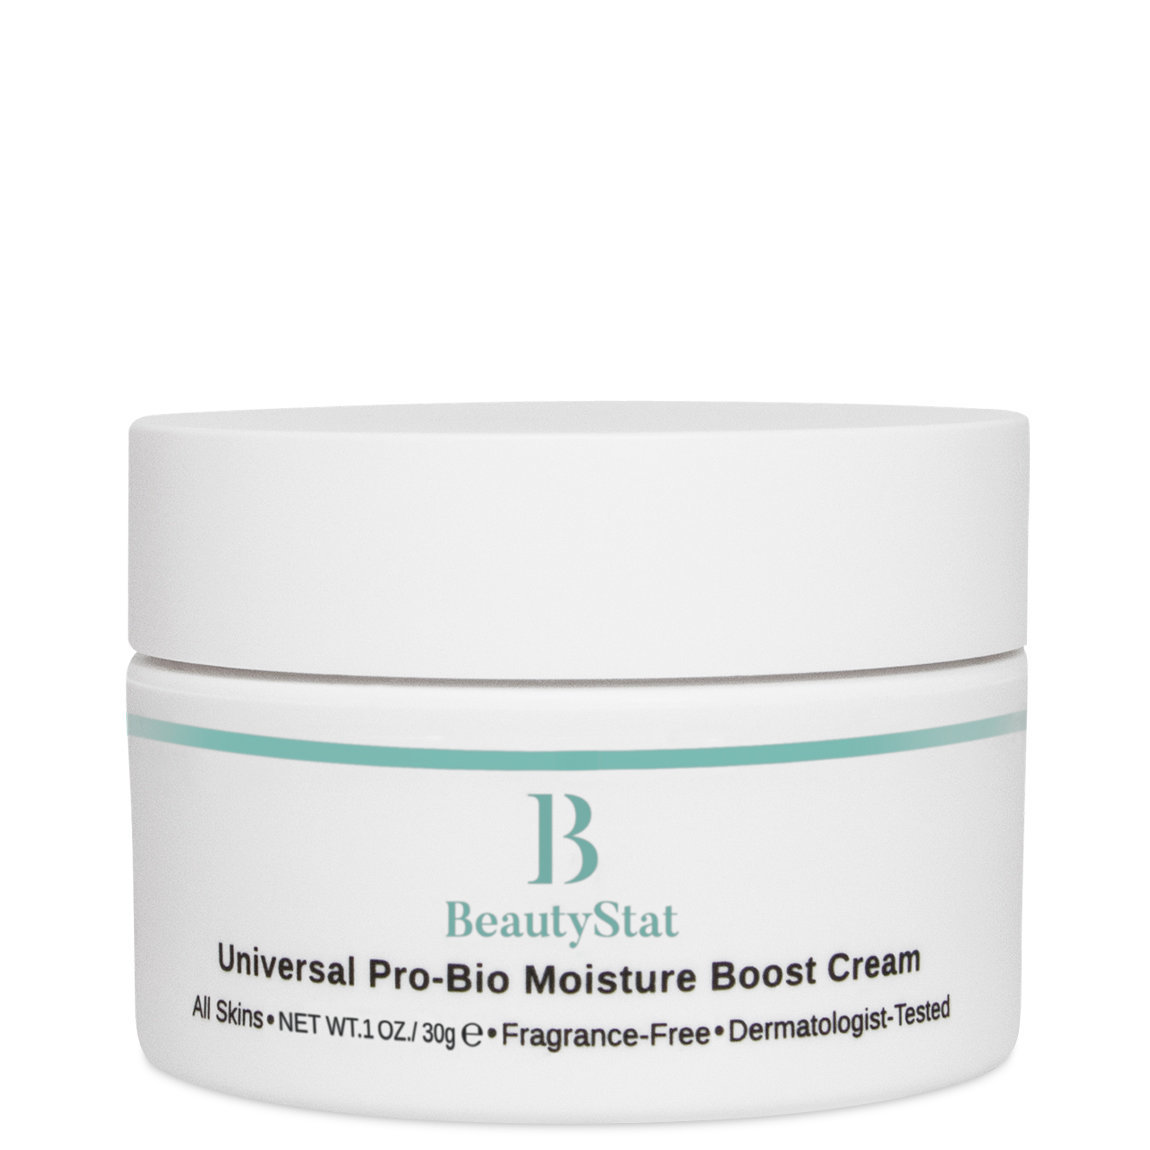 BeautyStat Universal Pro-Bio Moisture Boost Cream alternative view 1.